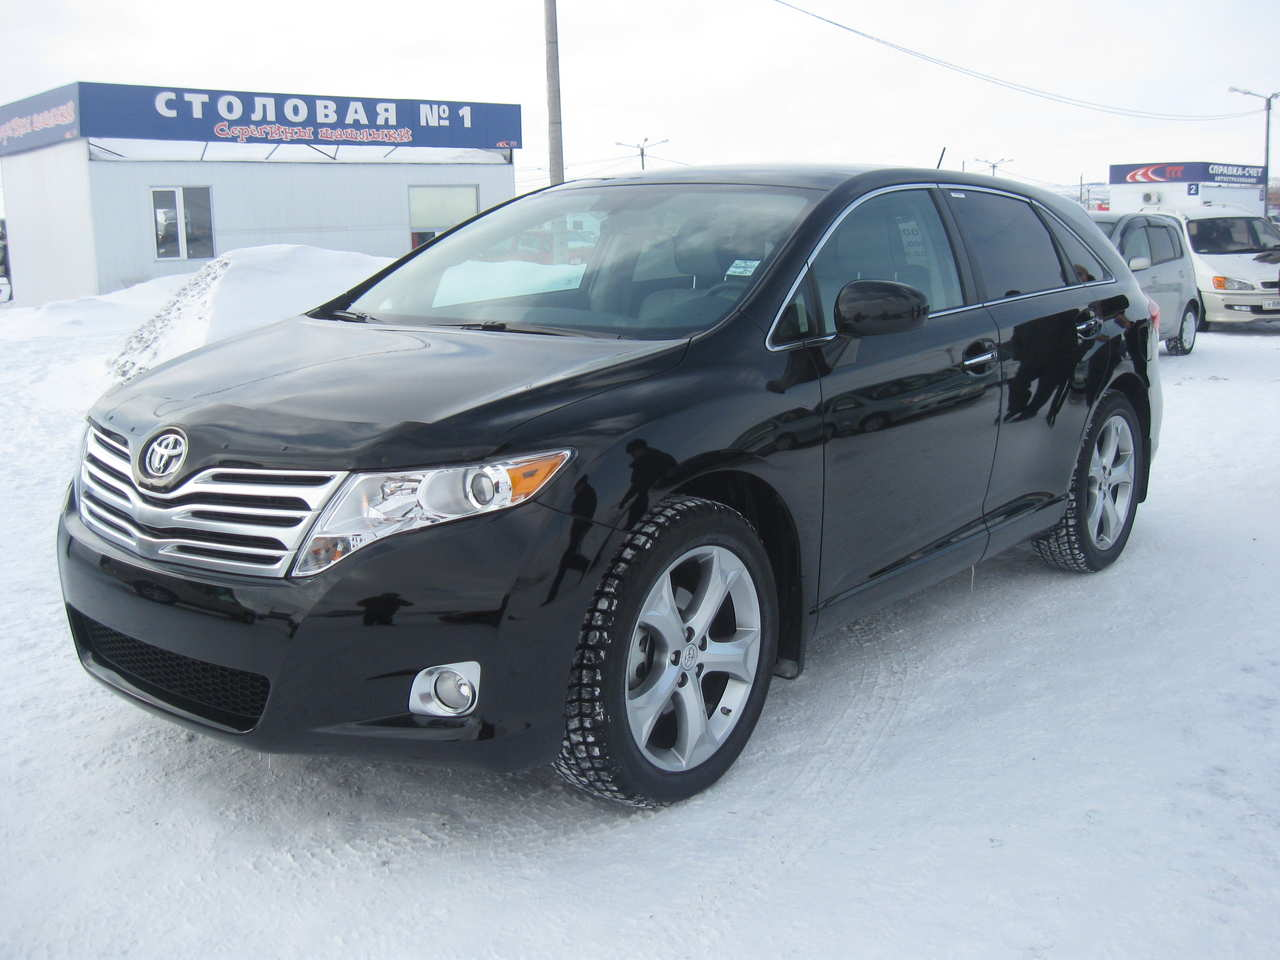 used 2009 toyota venza photos 3500cc gasoline automatic for sale. Black Bedroom Furniture Sets. Home Design Ideas